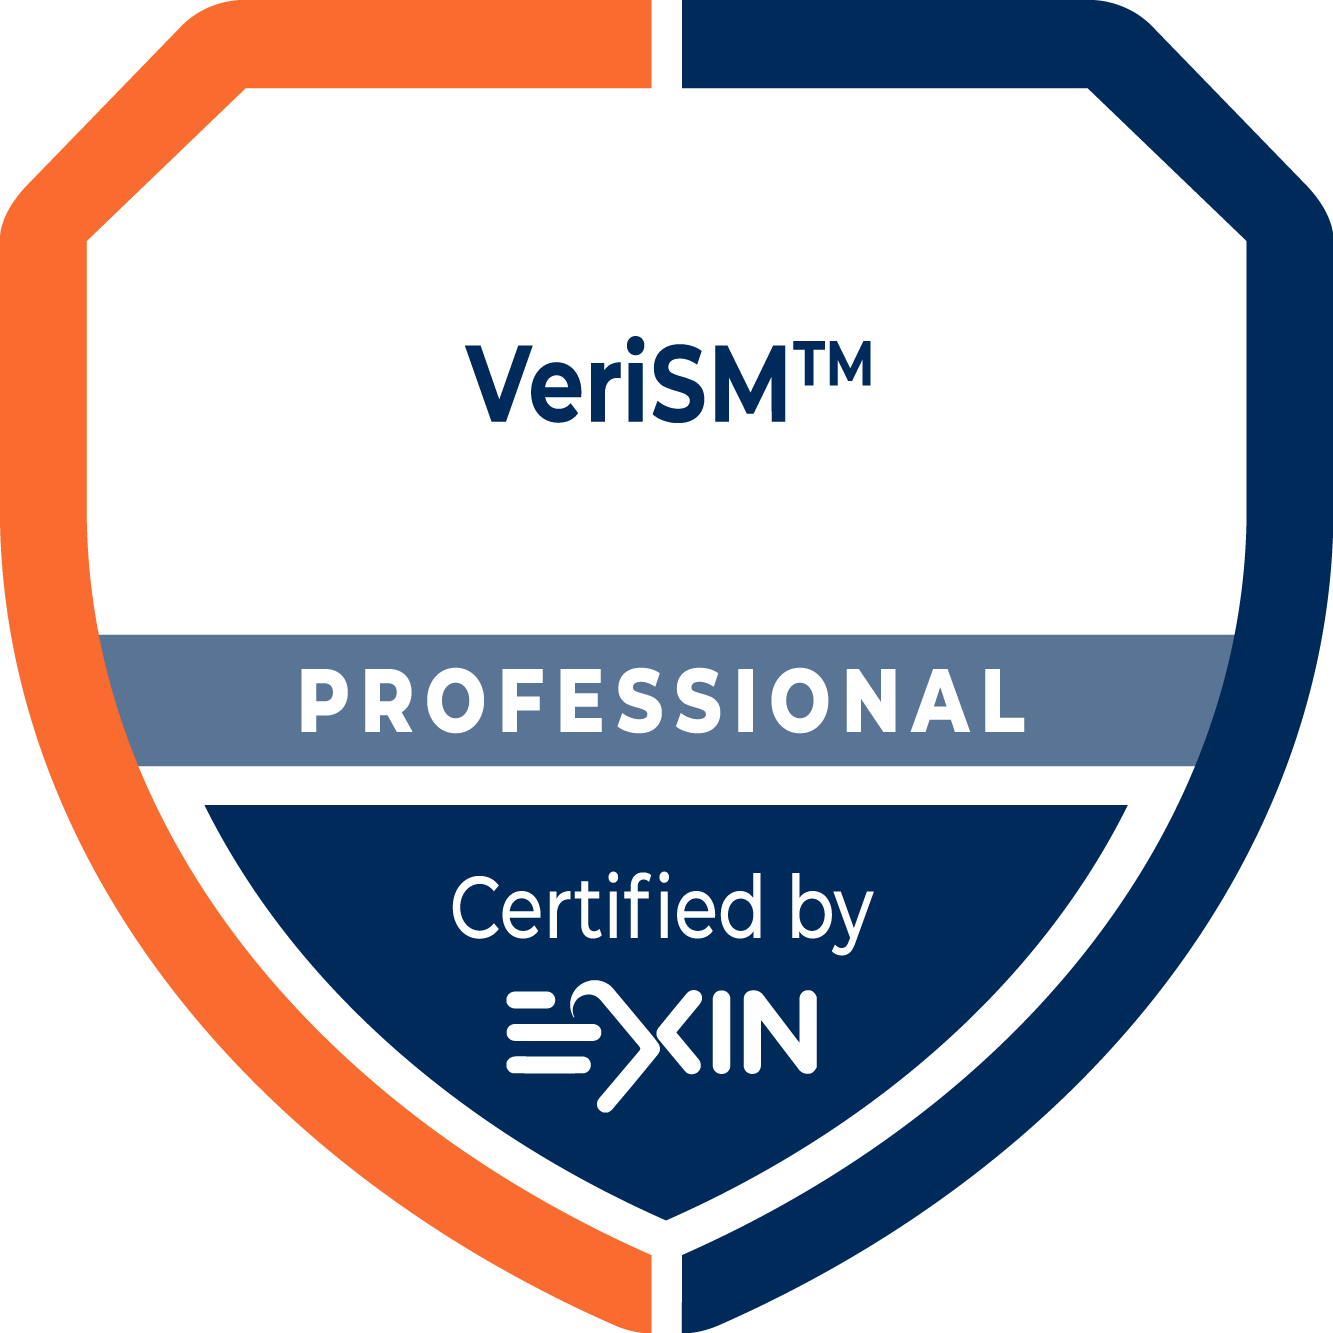 VeriSM™ Professional